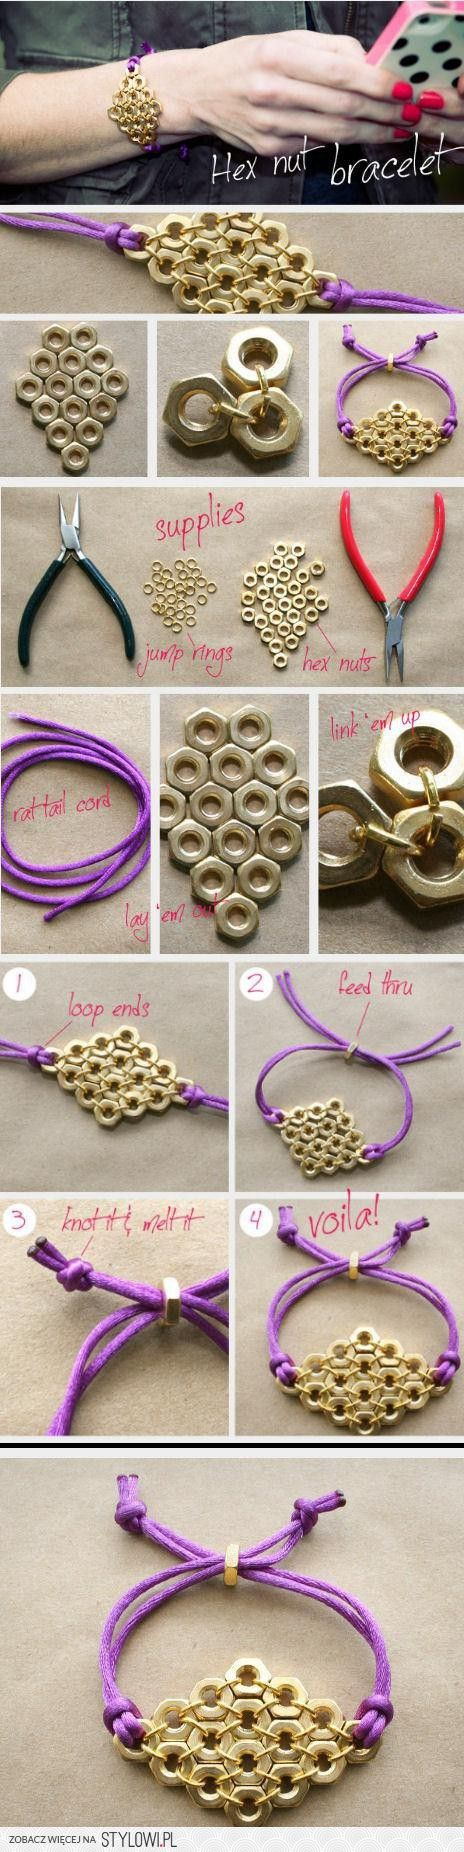 Hex Nut Bracelet - Japanese chainmail variation?